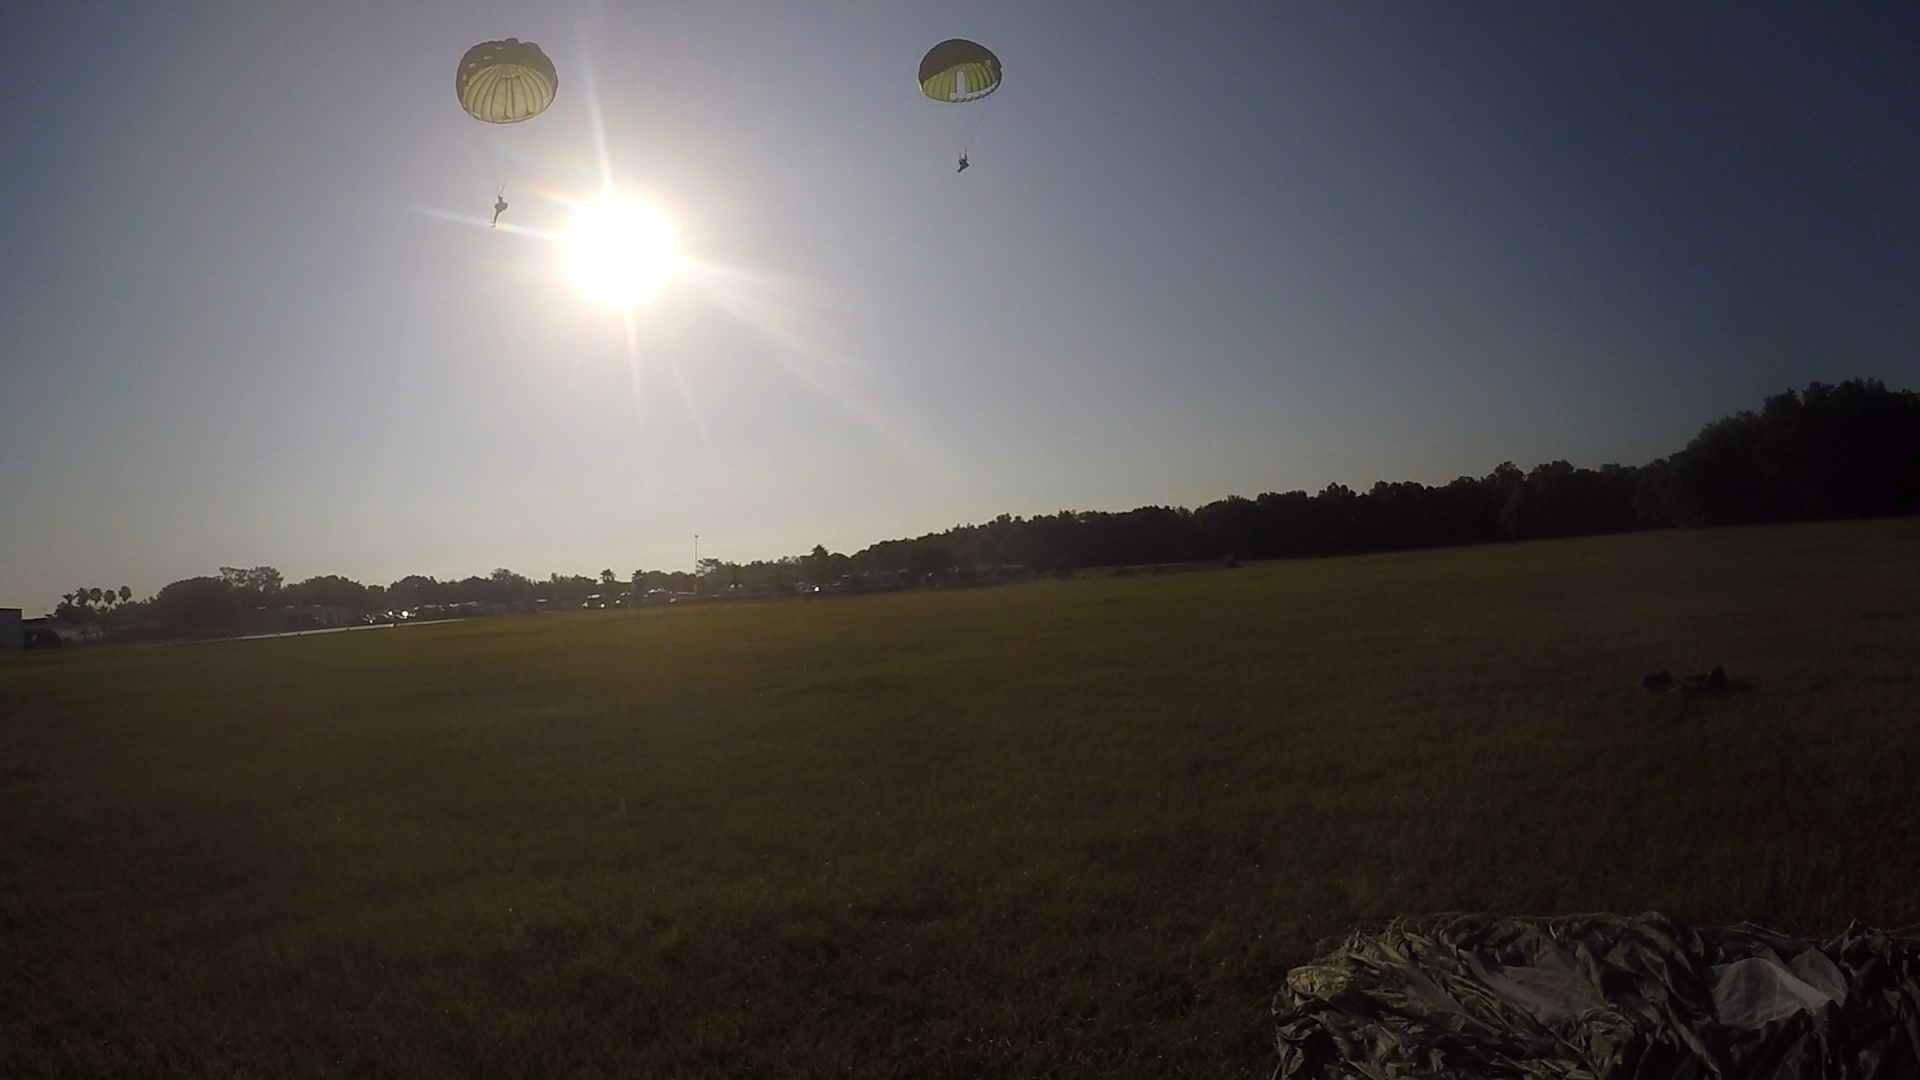 Airborne 160514 - Two and sun.jpg